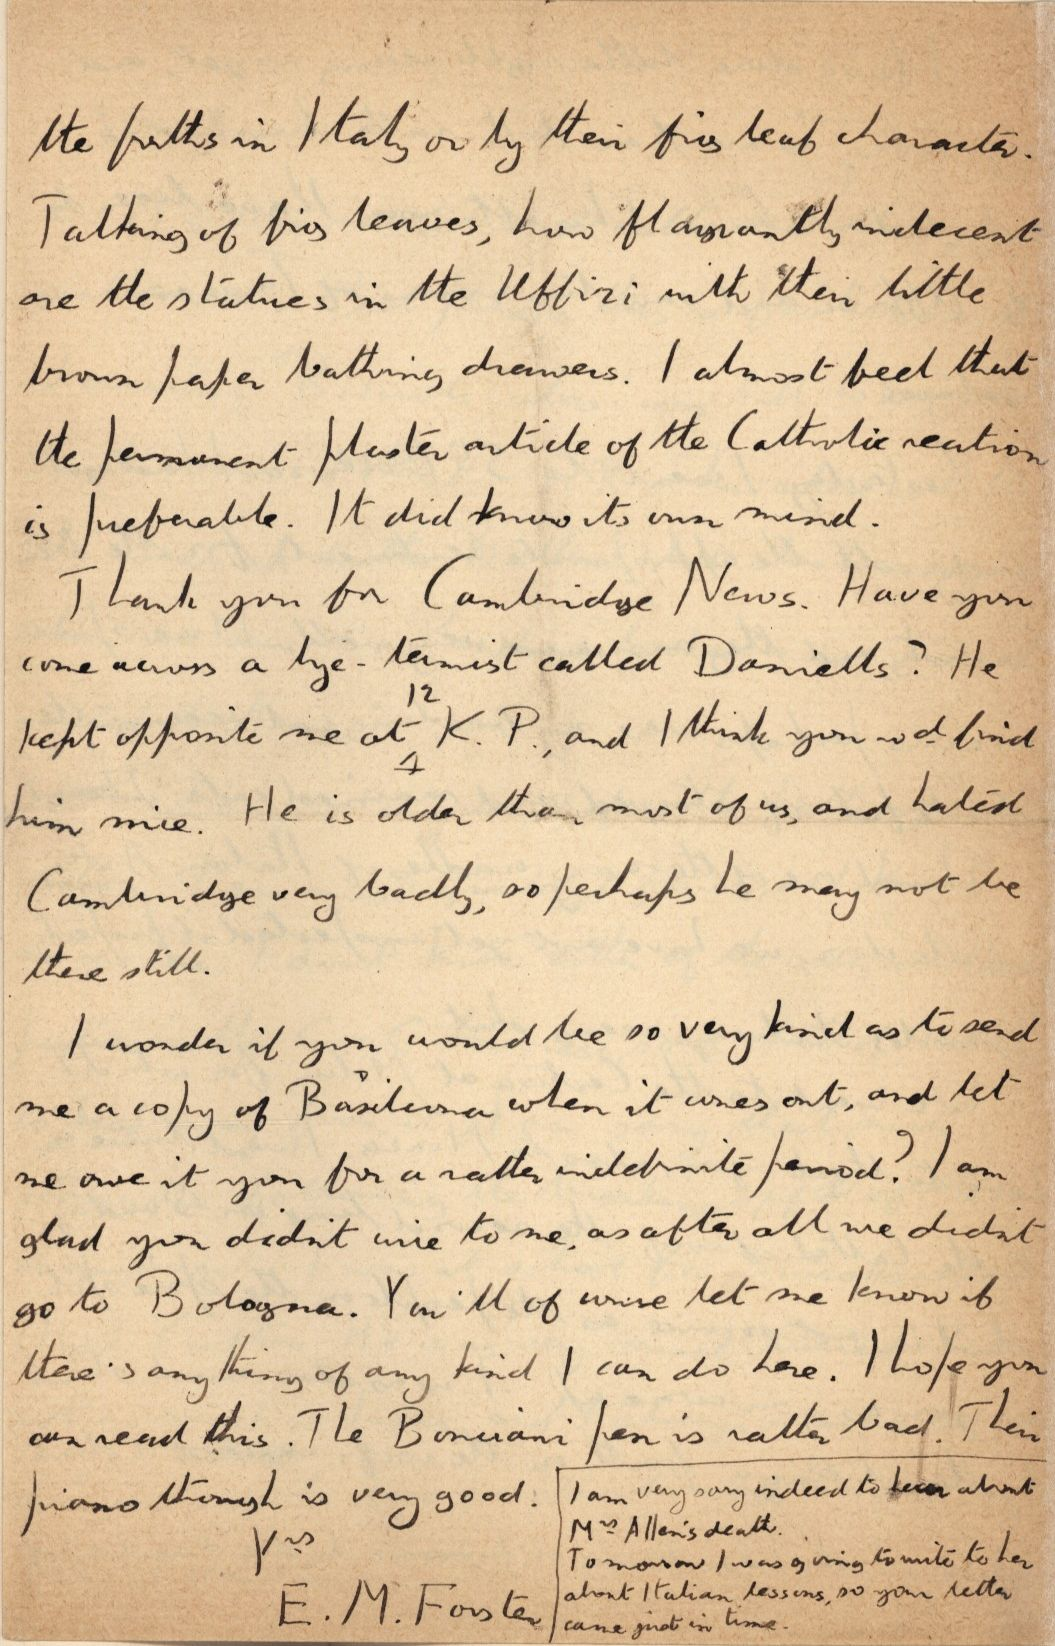 Continuation of Forster's letter to Edward Dent, concerning the Pensione Simi. [EMF/18/151]